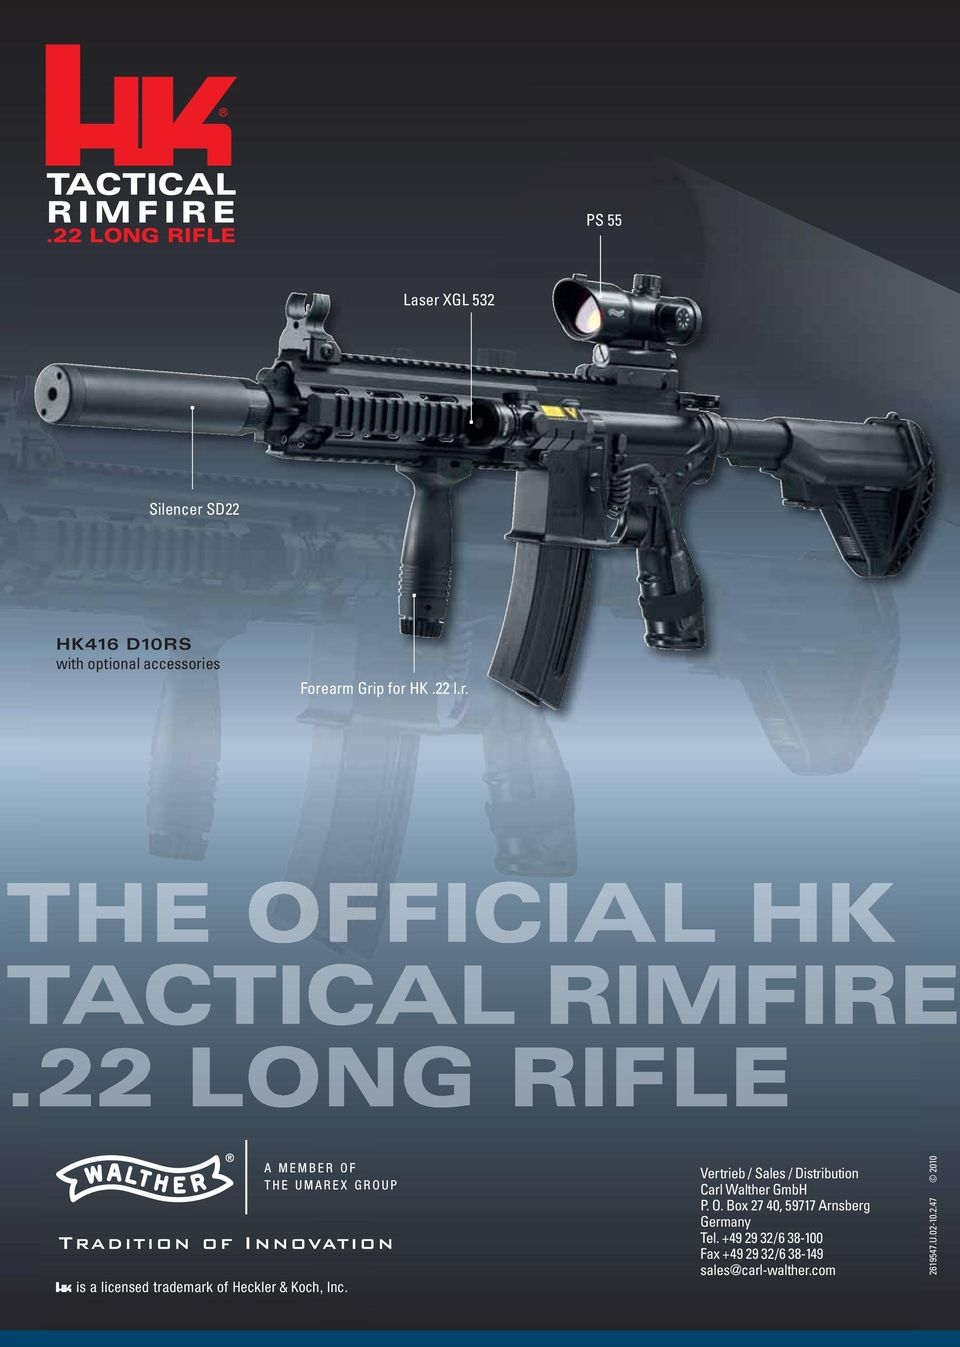 INTRODUCING THE OFFICIAL TACTICAL RIMFIRE  22 LONG RIFLE  is